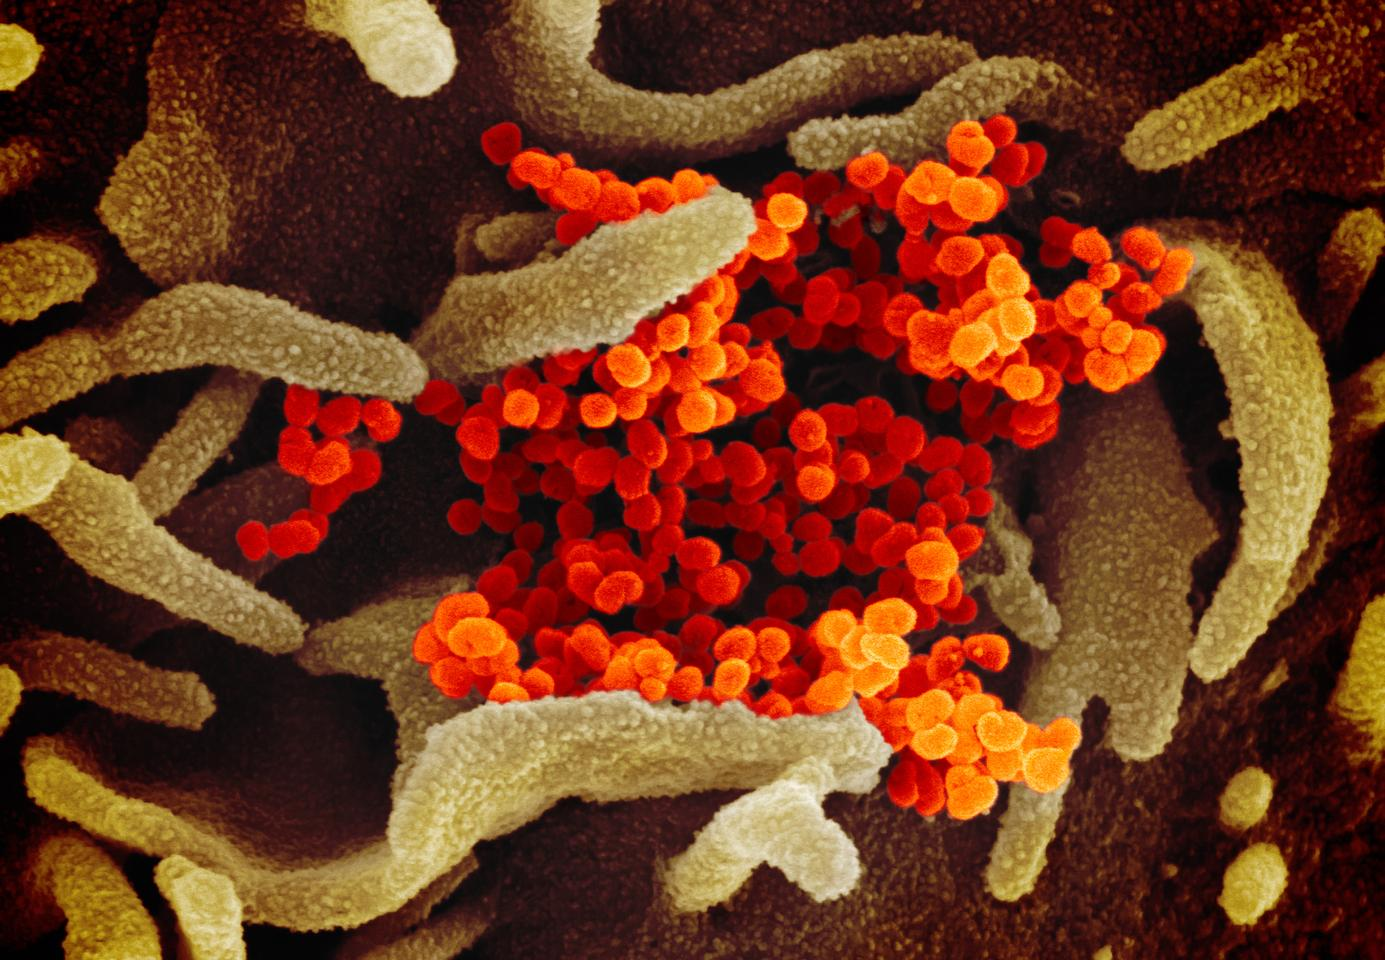 This scanning electron microscope image shows the novel coronavirus, SARS-CoV-2 (colored in orange), isolated from a patient in the U.S., emerging from the surface of cells (green) cultured in the lab